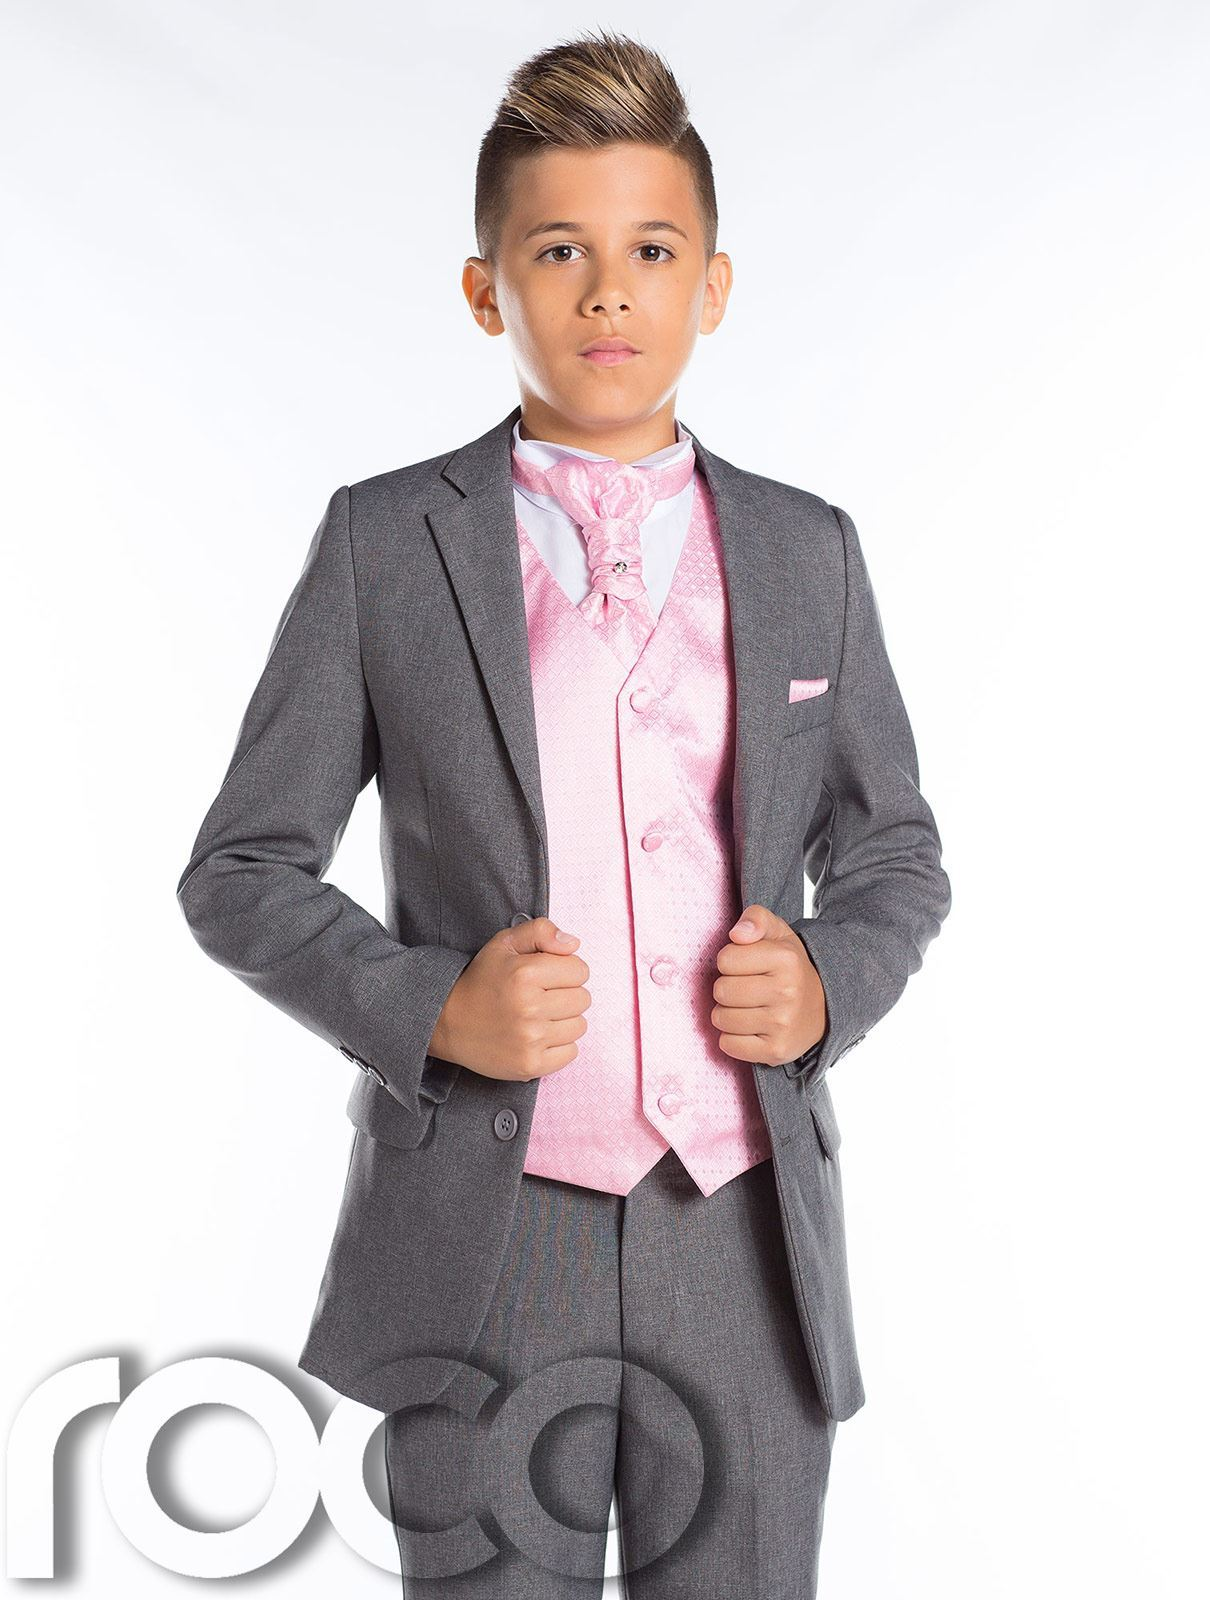 Boys Wedding Suit Slim Fit Suit Boys Grey Suit Boys Prom Suit